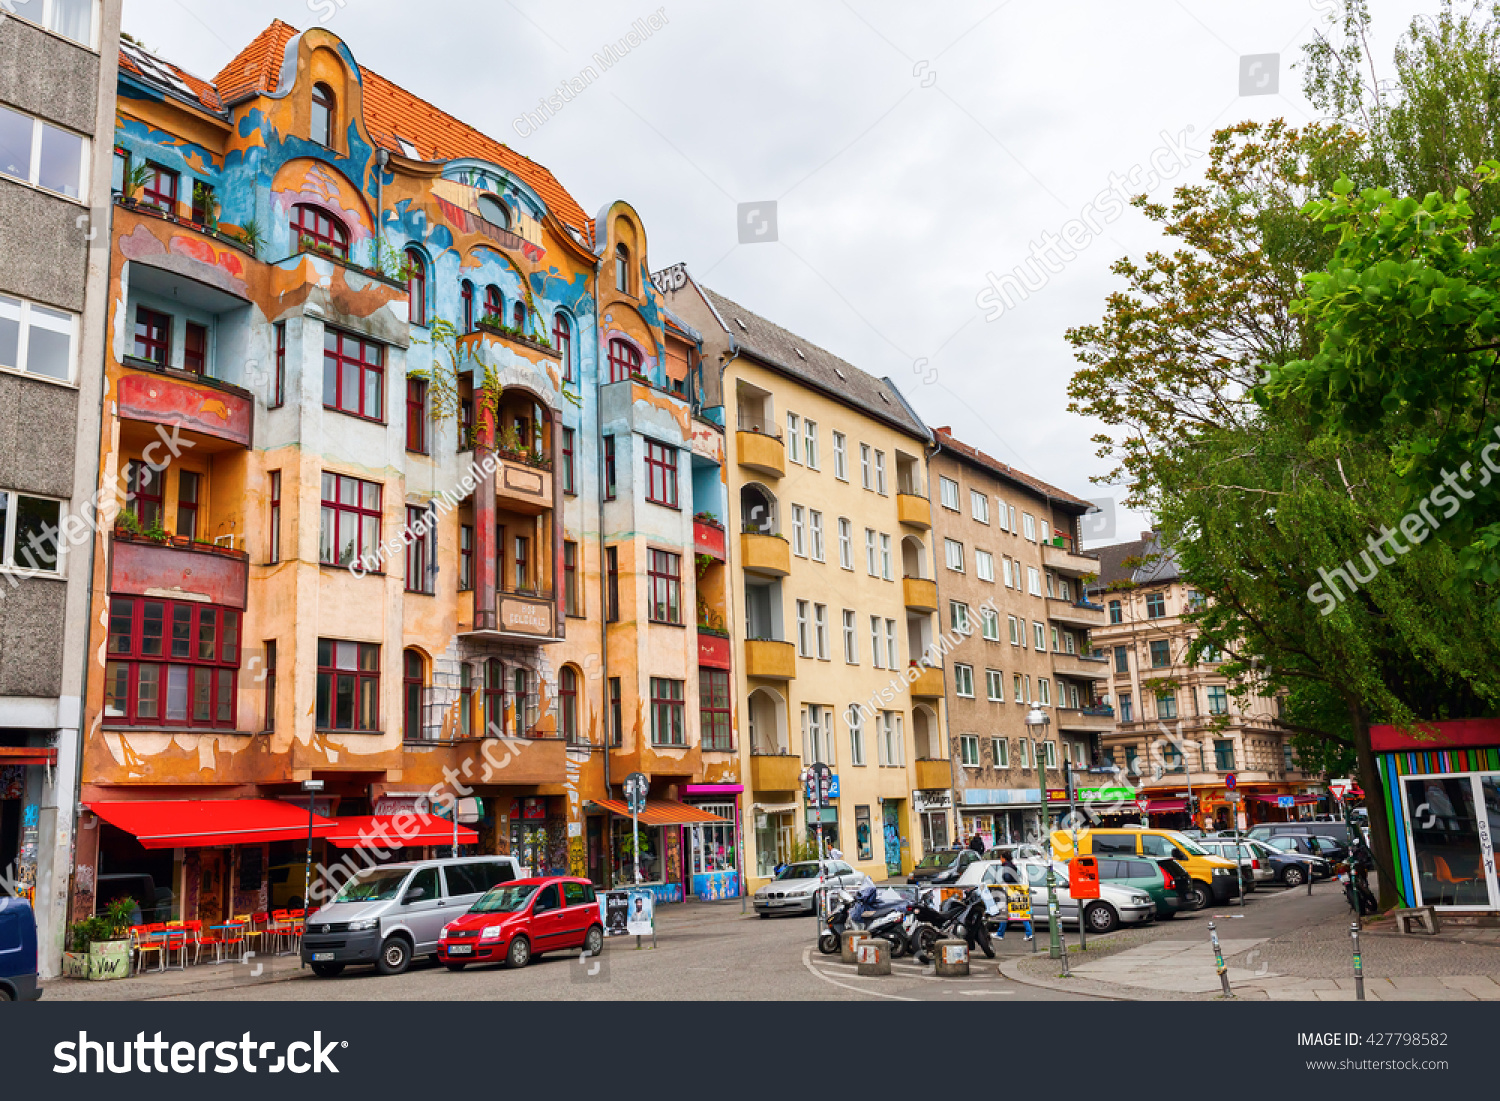 berlin germany may 17 2016 street stock photo 427798582 shutterstock. Black Bedroom Furniture Sets. Home Design Ideas